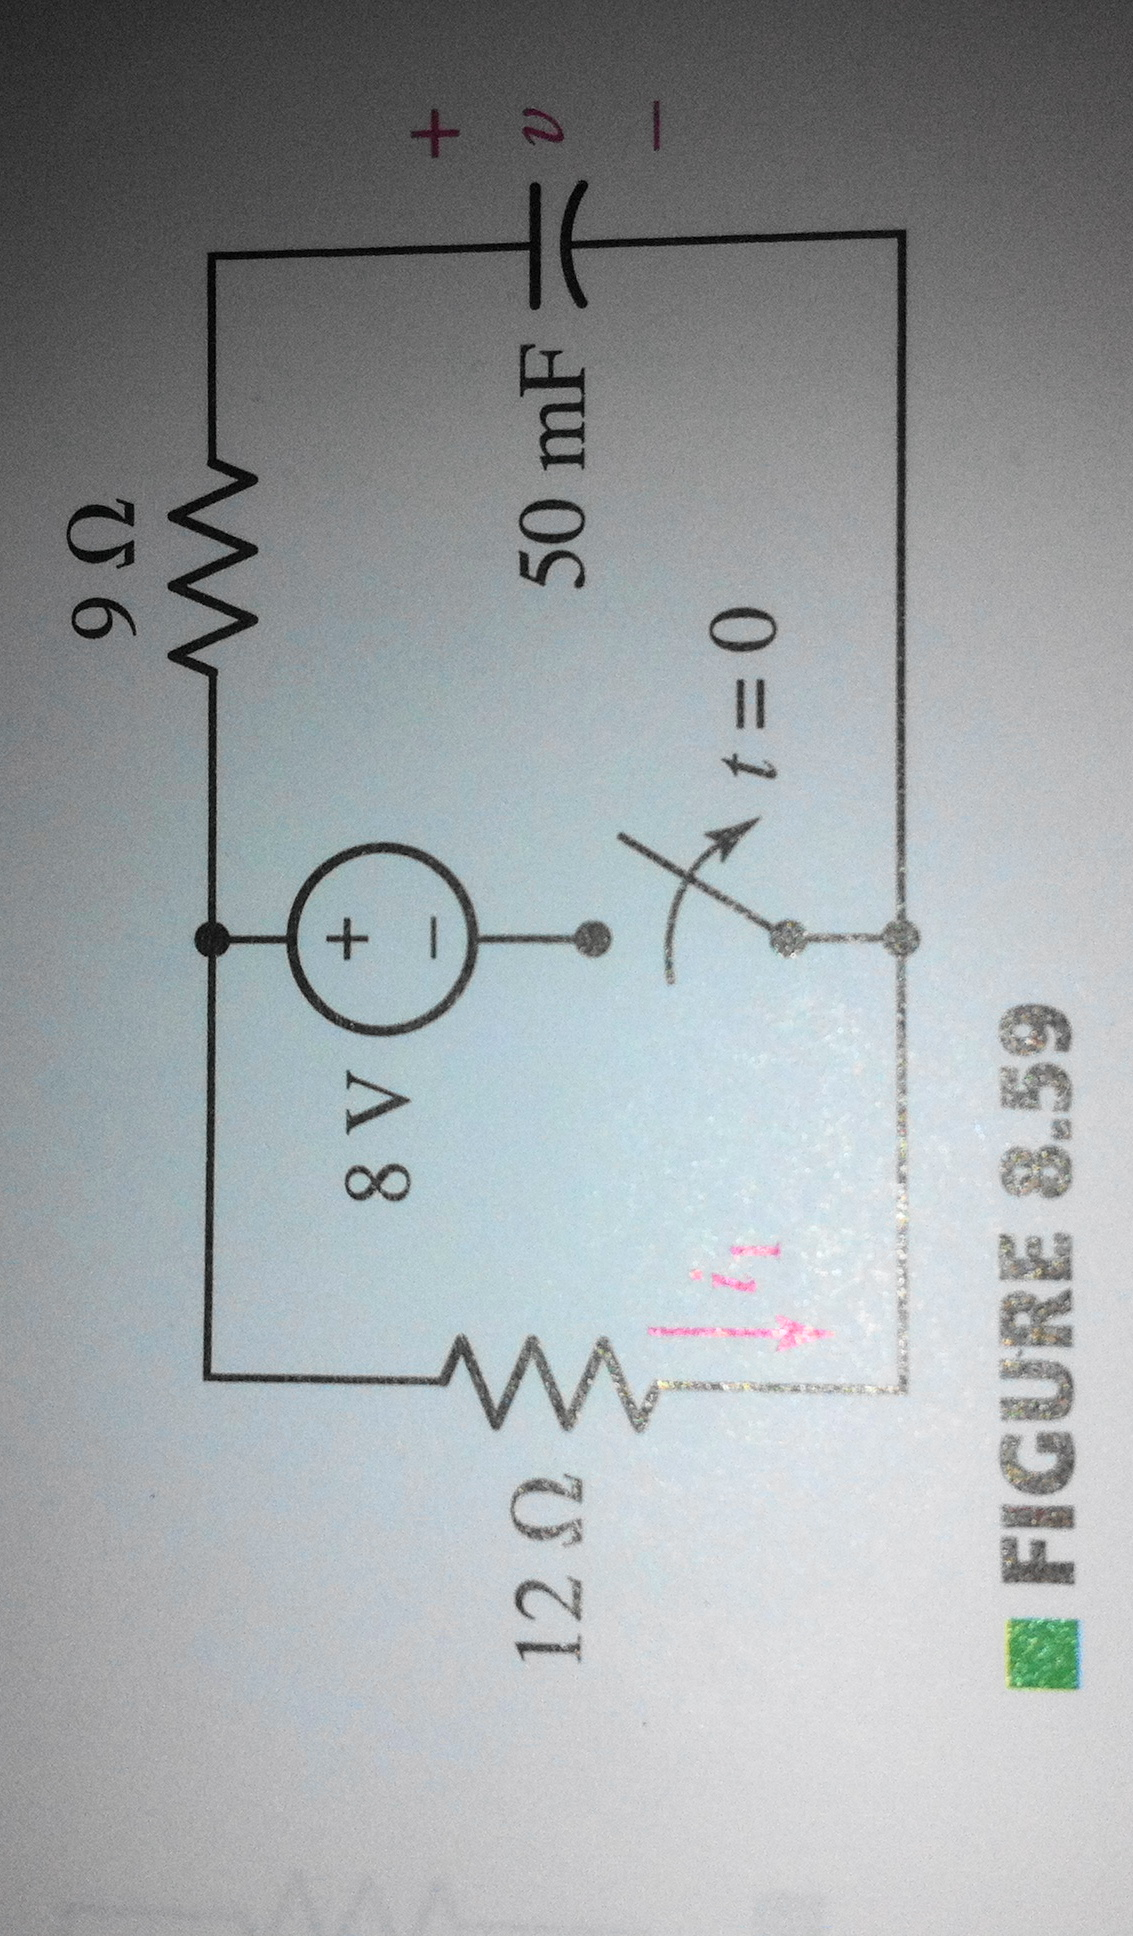 We can safely assume the switch in the circuit o